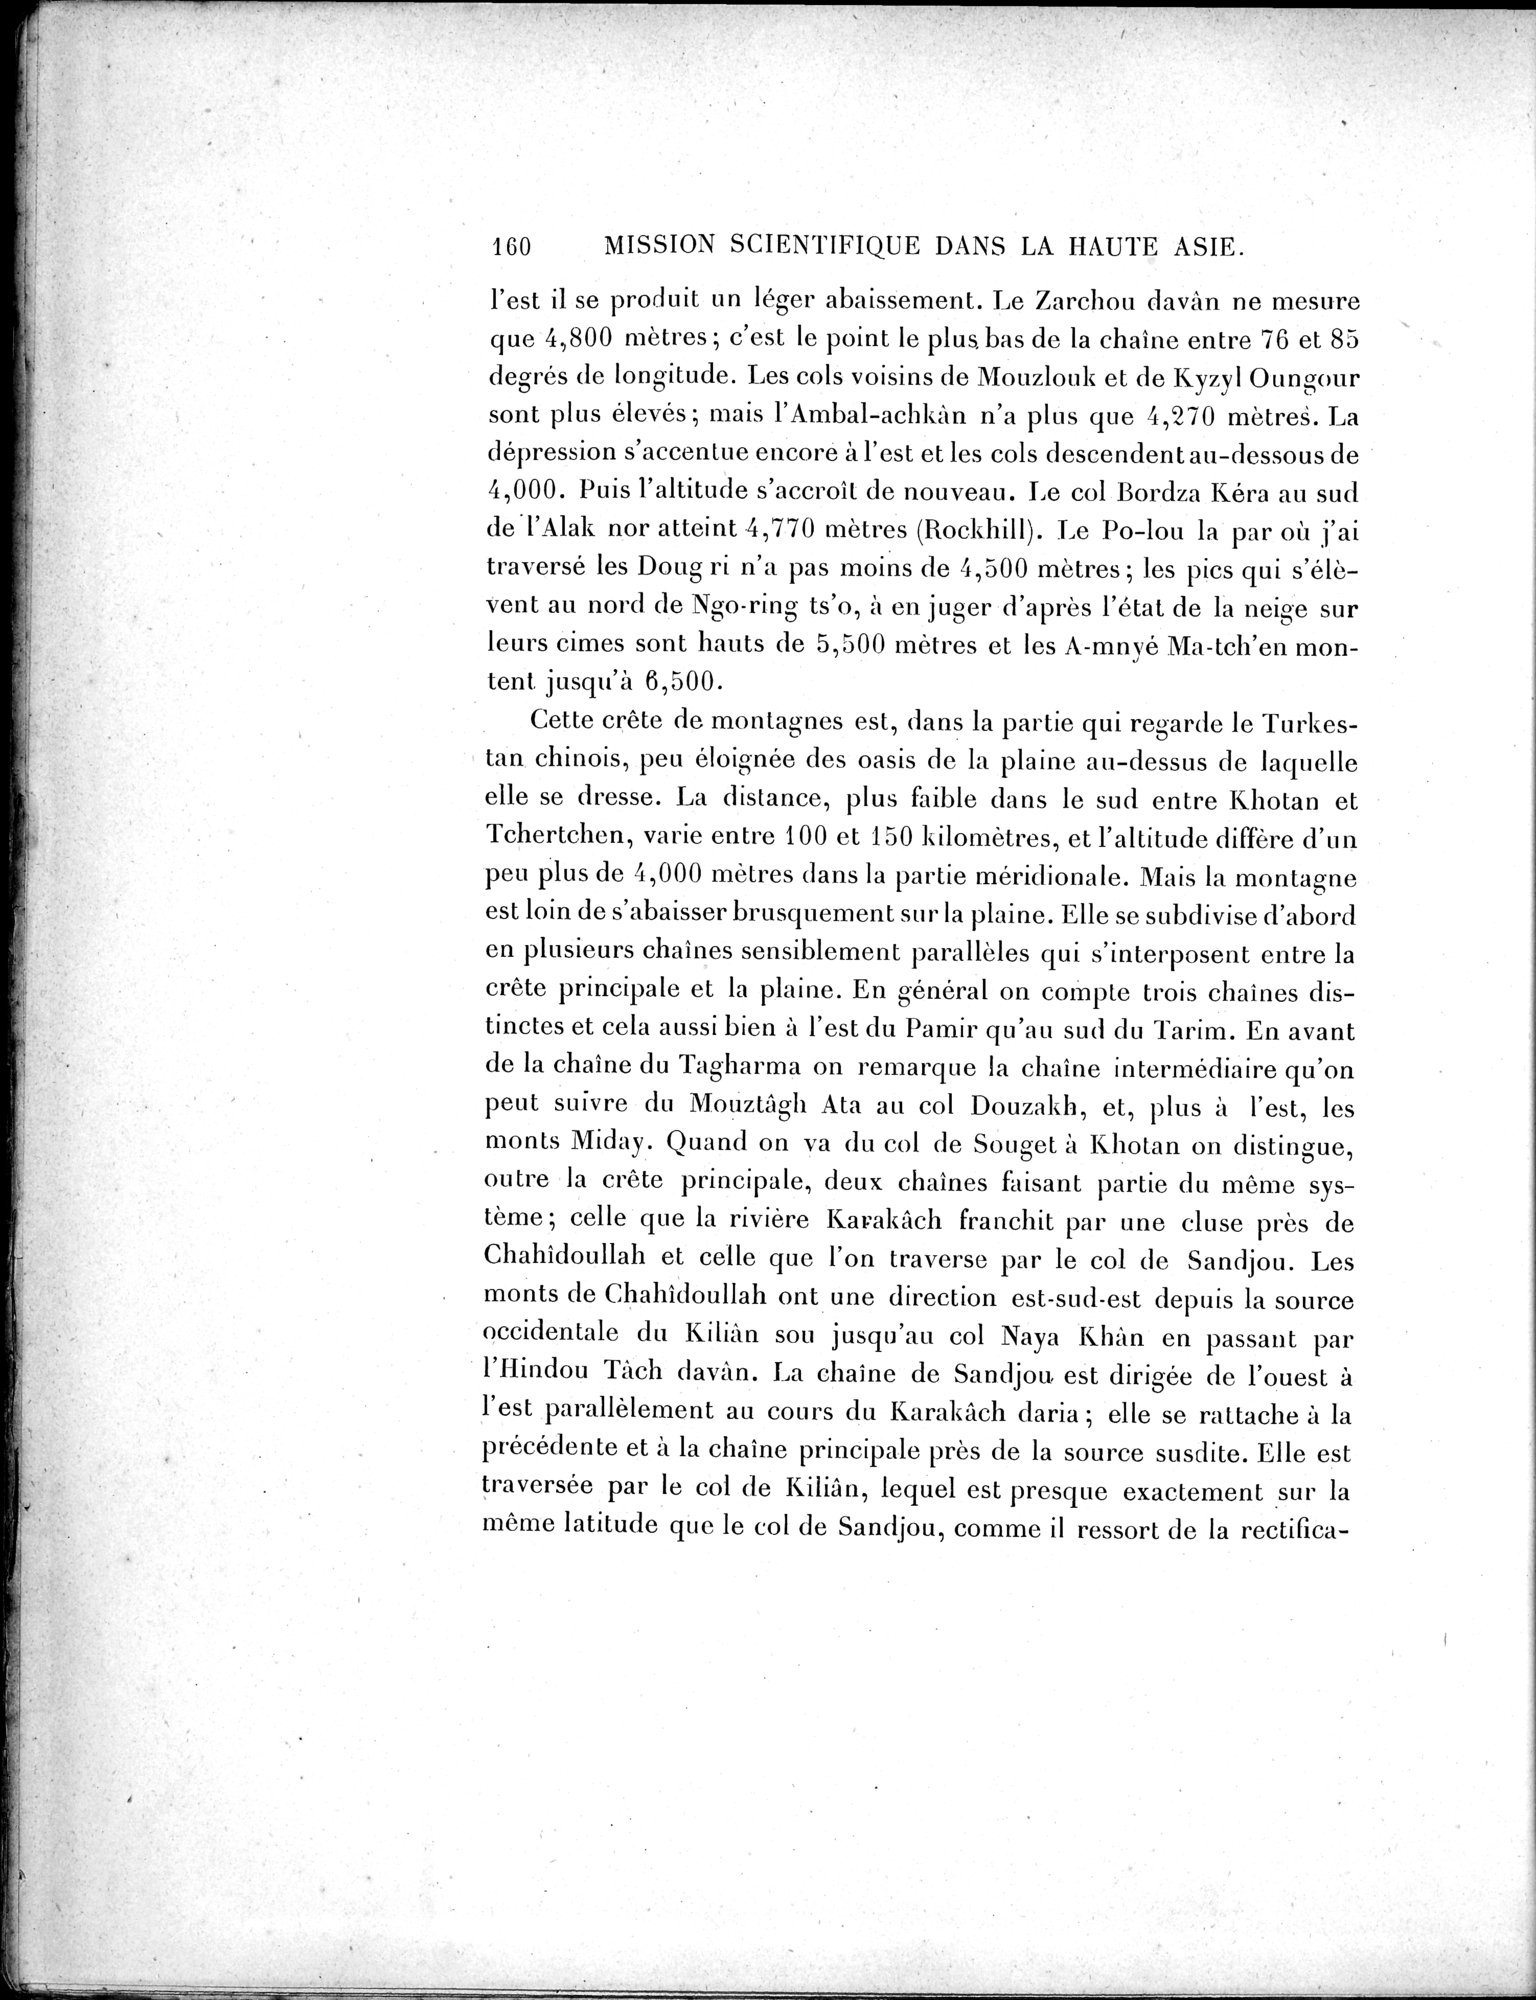 Mission Scientifique dans la Haute Asie 1890-1895 : vol.3 / Page 178 (Grayscale High Resolution Image)